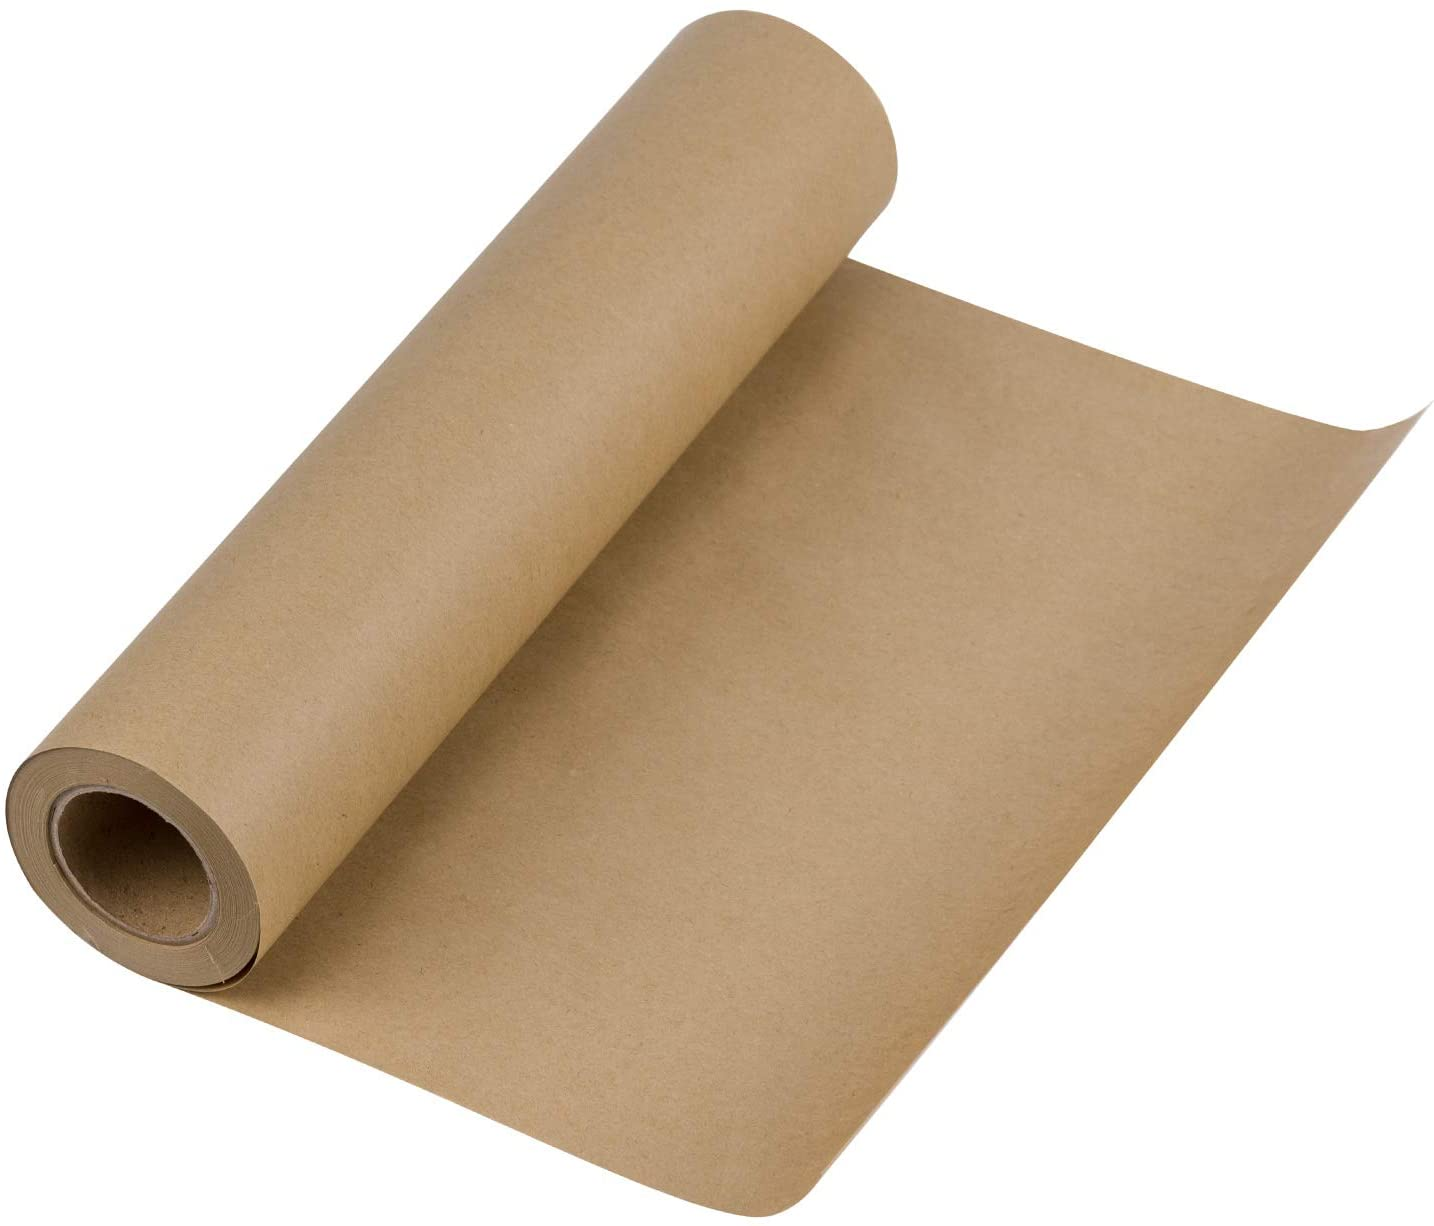 RUSPEPA Brown Kraft Paper Roll - 12 inch x 100 Feet - Natural Recyclable Paper Perfect for Crafts, Art, Small Gift Wrapping, Packing, Postal, Shipping, Dunnage & Parcel